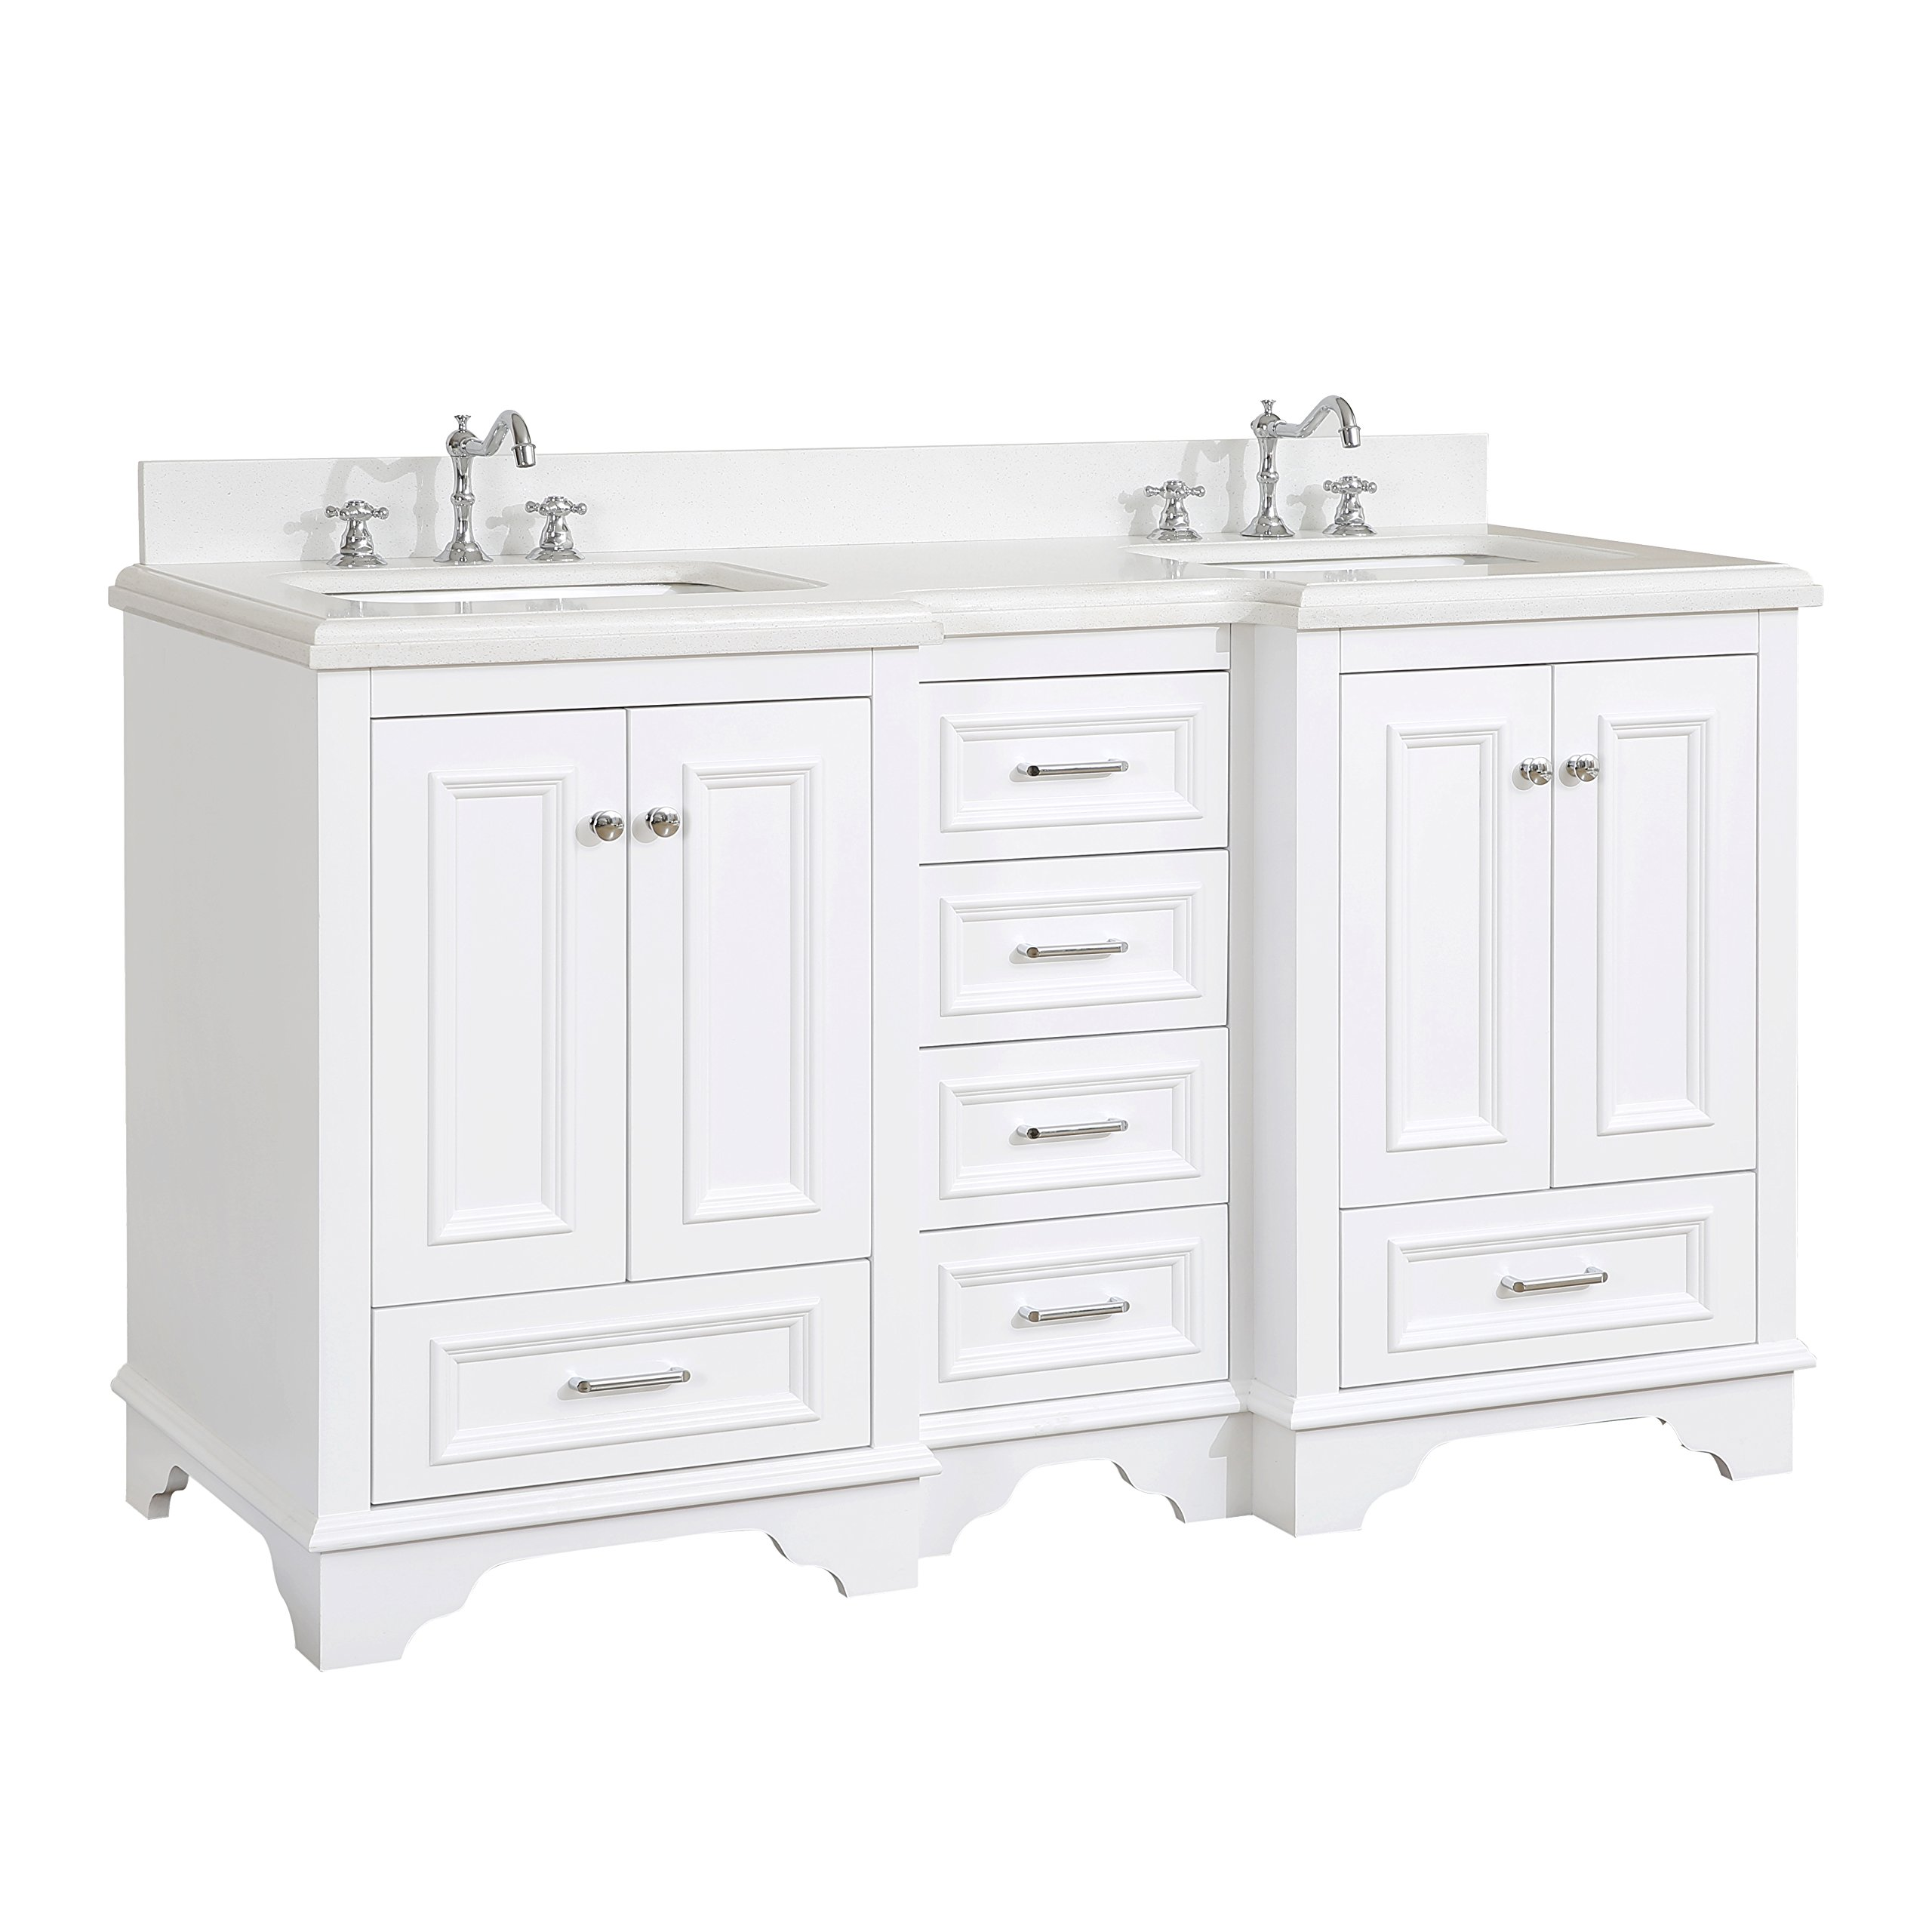 Nantucket 60-inch Double Bathroom Vanity (Quartz/White): Includes White Cabinet with Soft Close Drawers, Quartz Countertop, and Two Ceramic Sinks